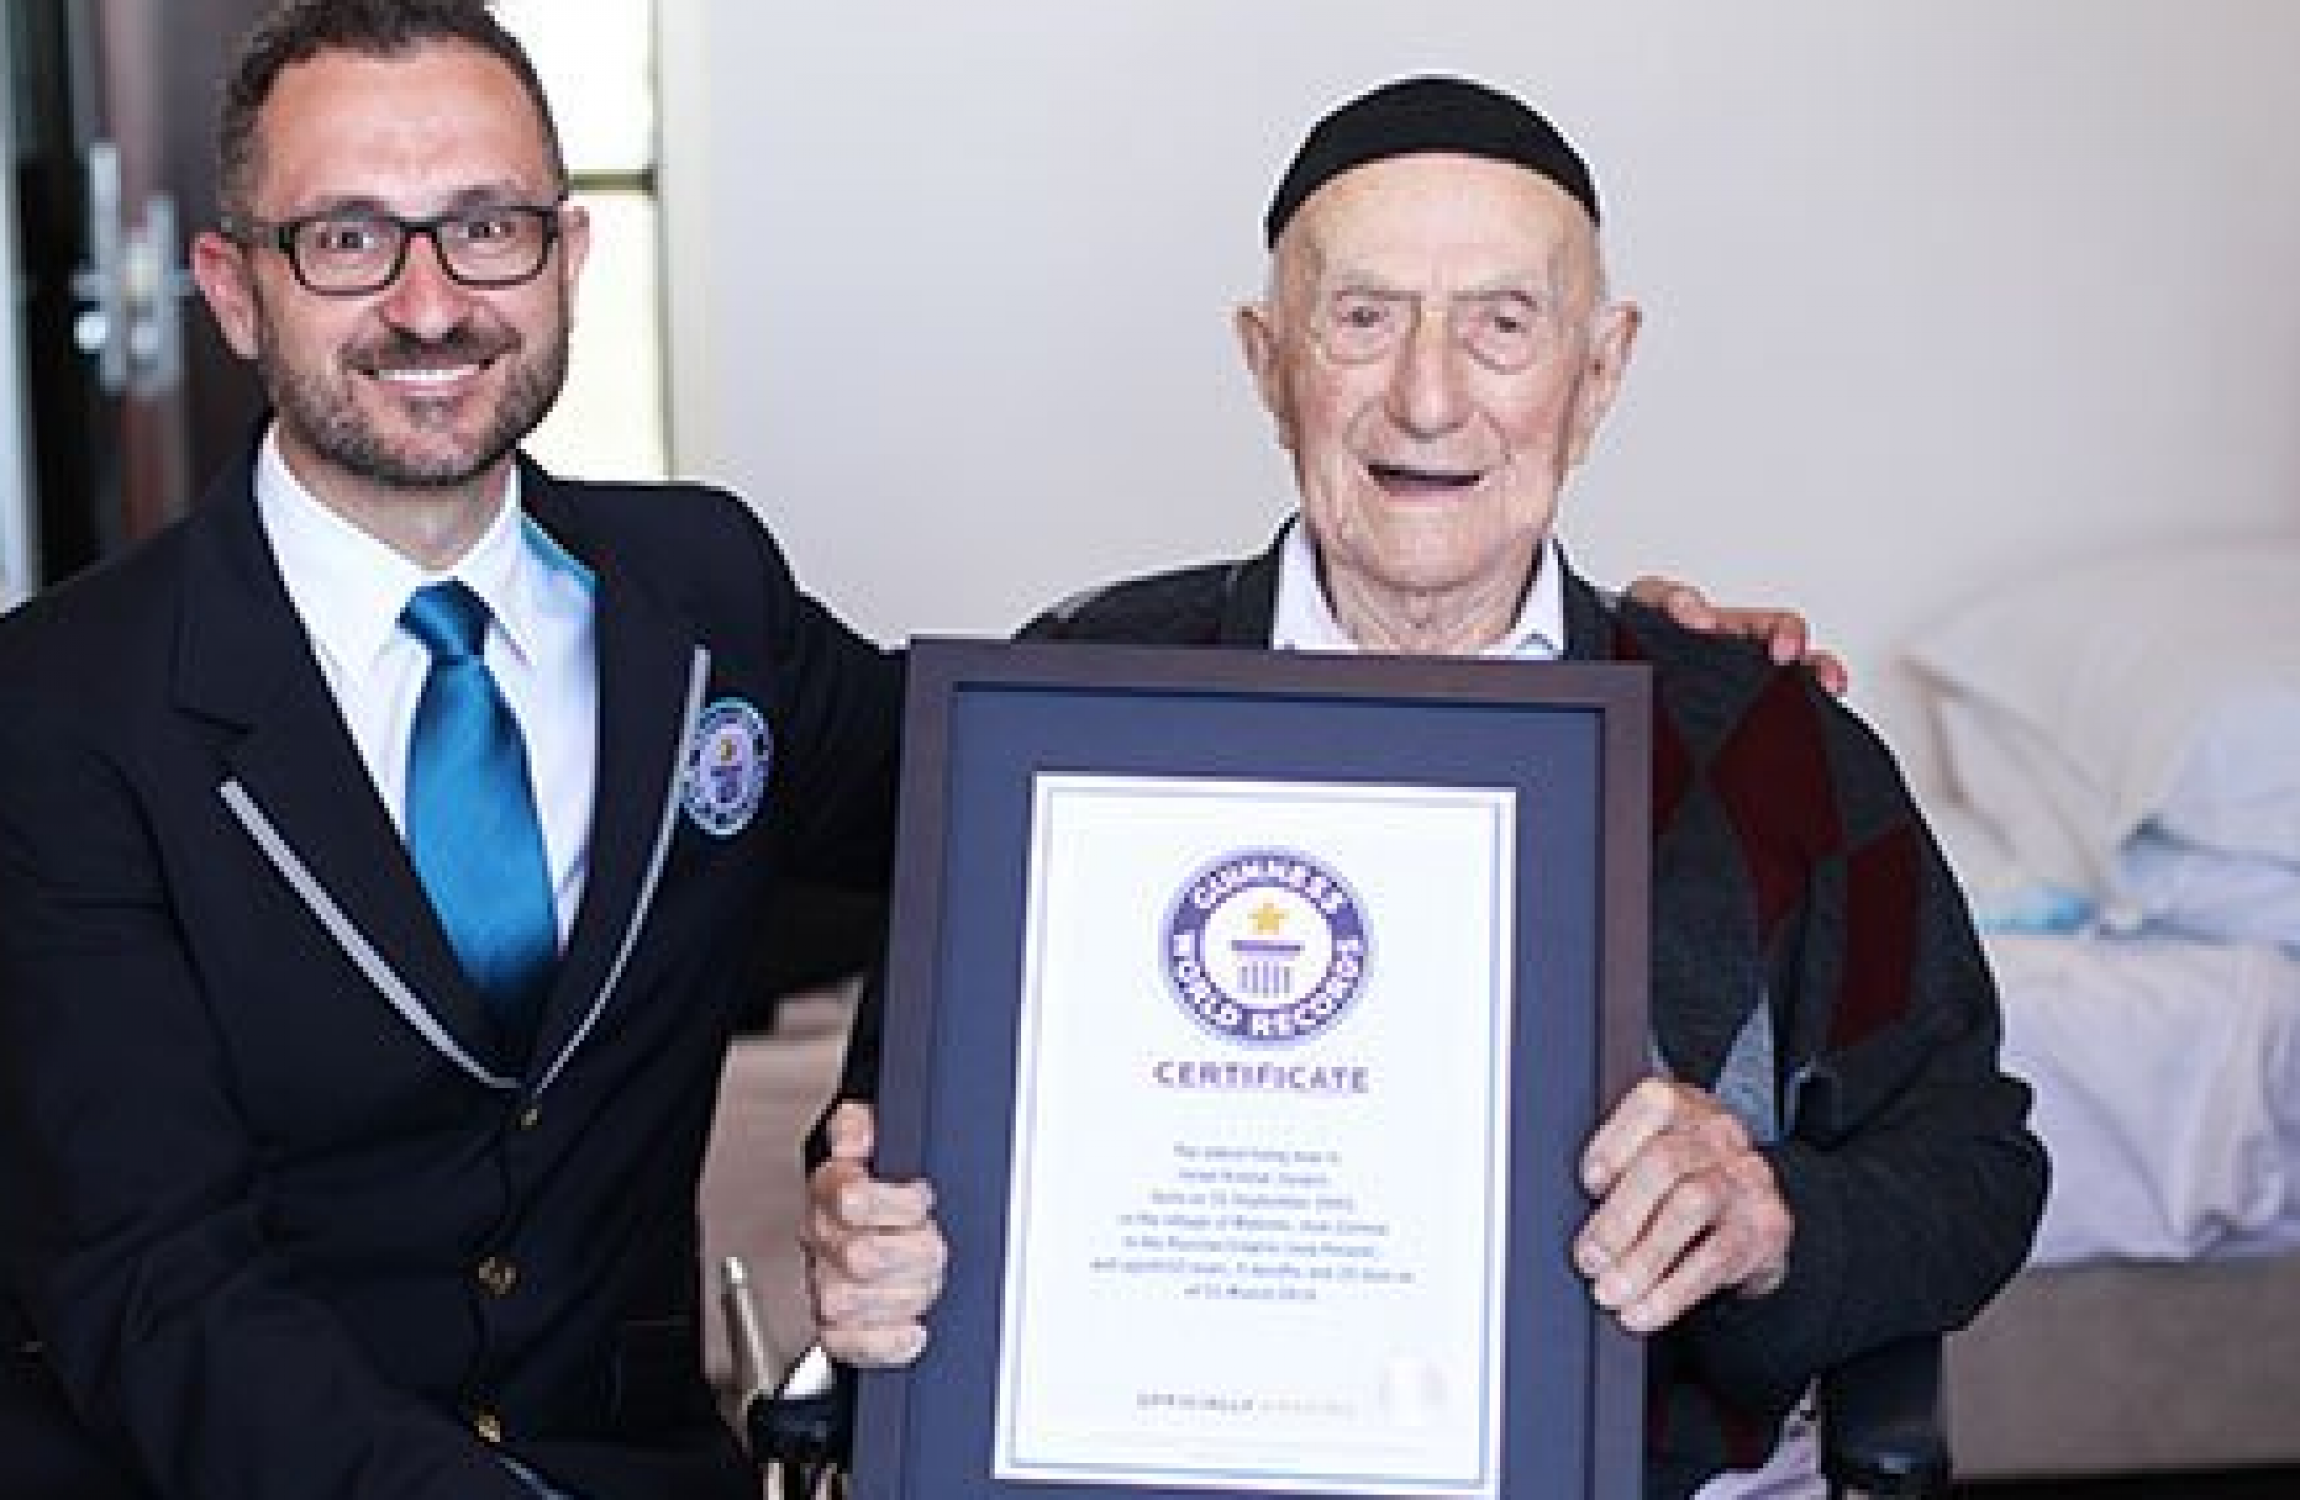 World's oldest man, who survived Auschwitz, dies at 113